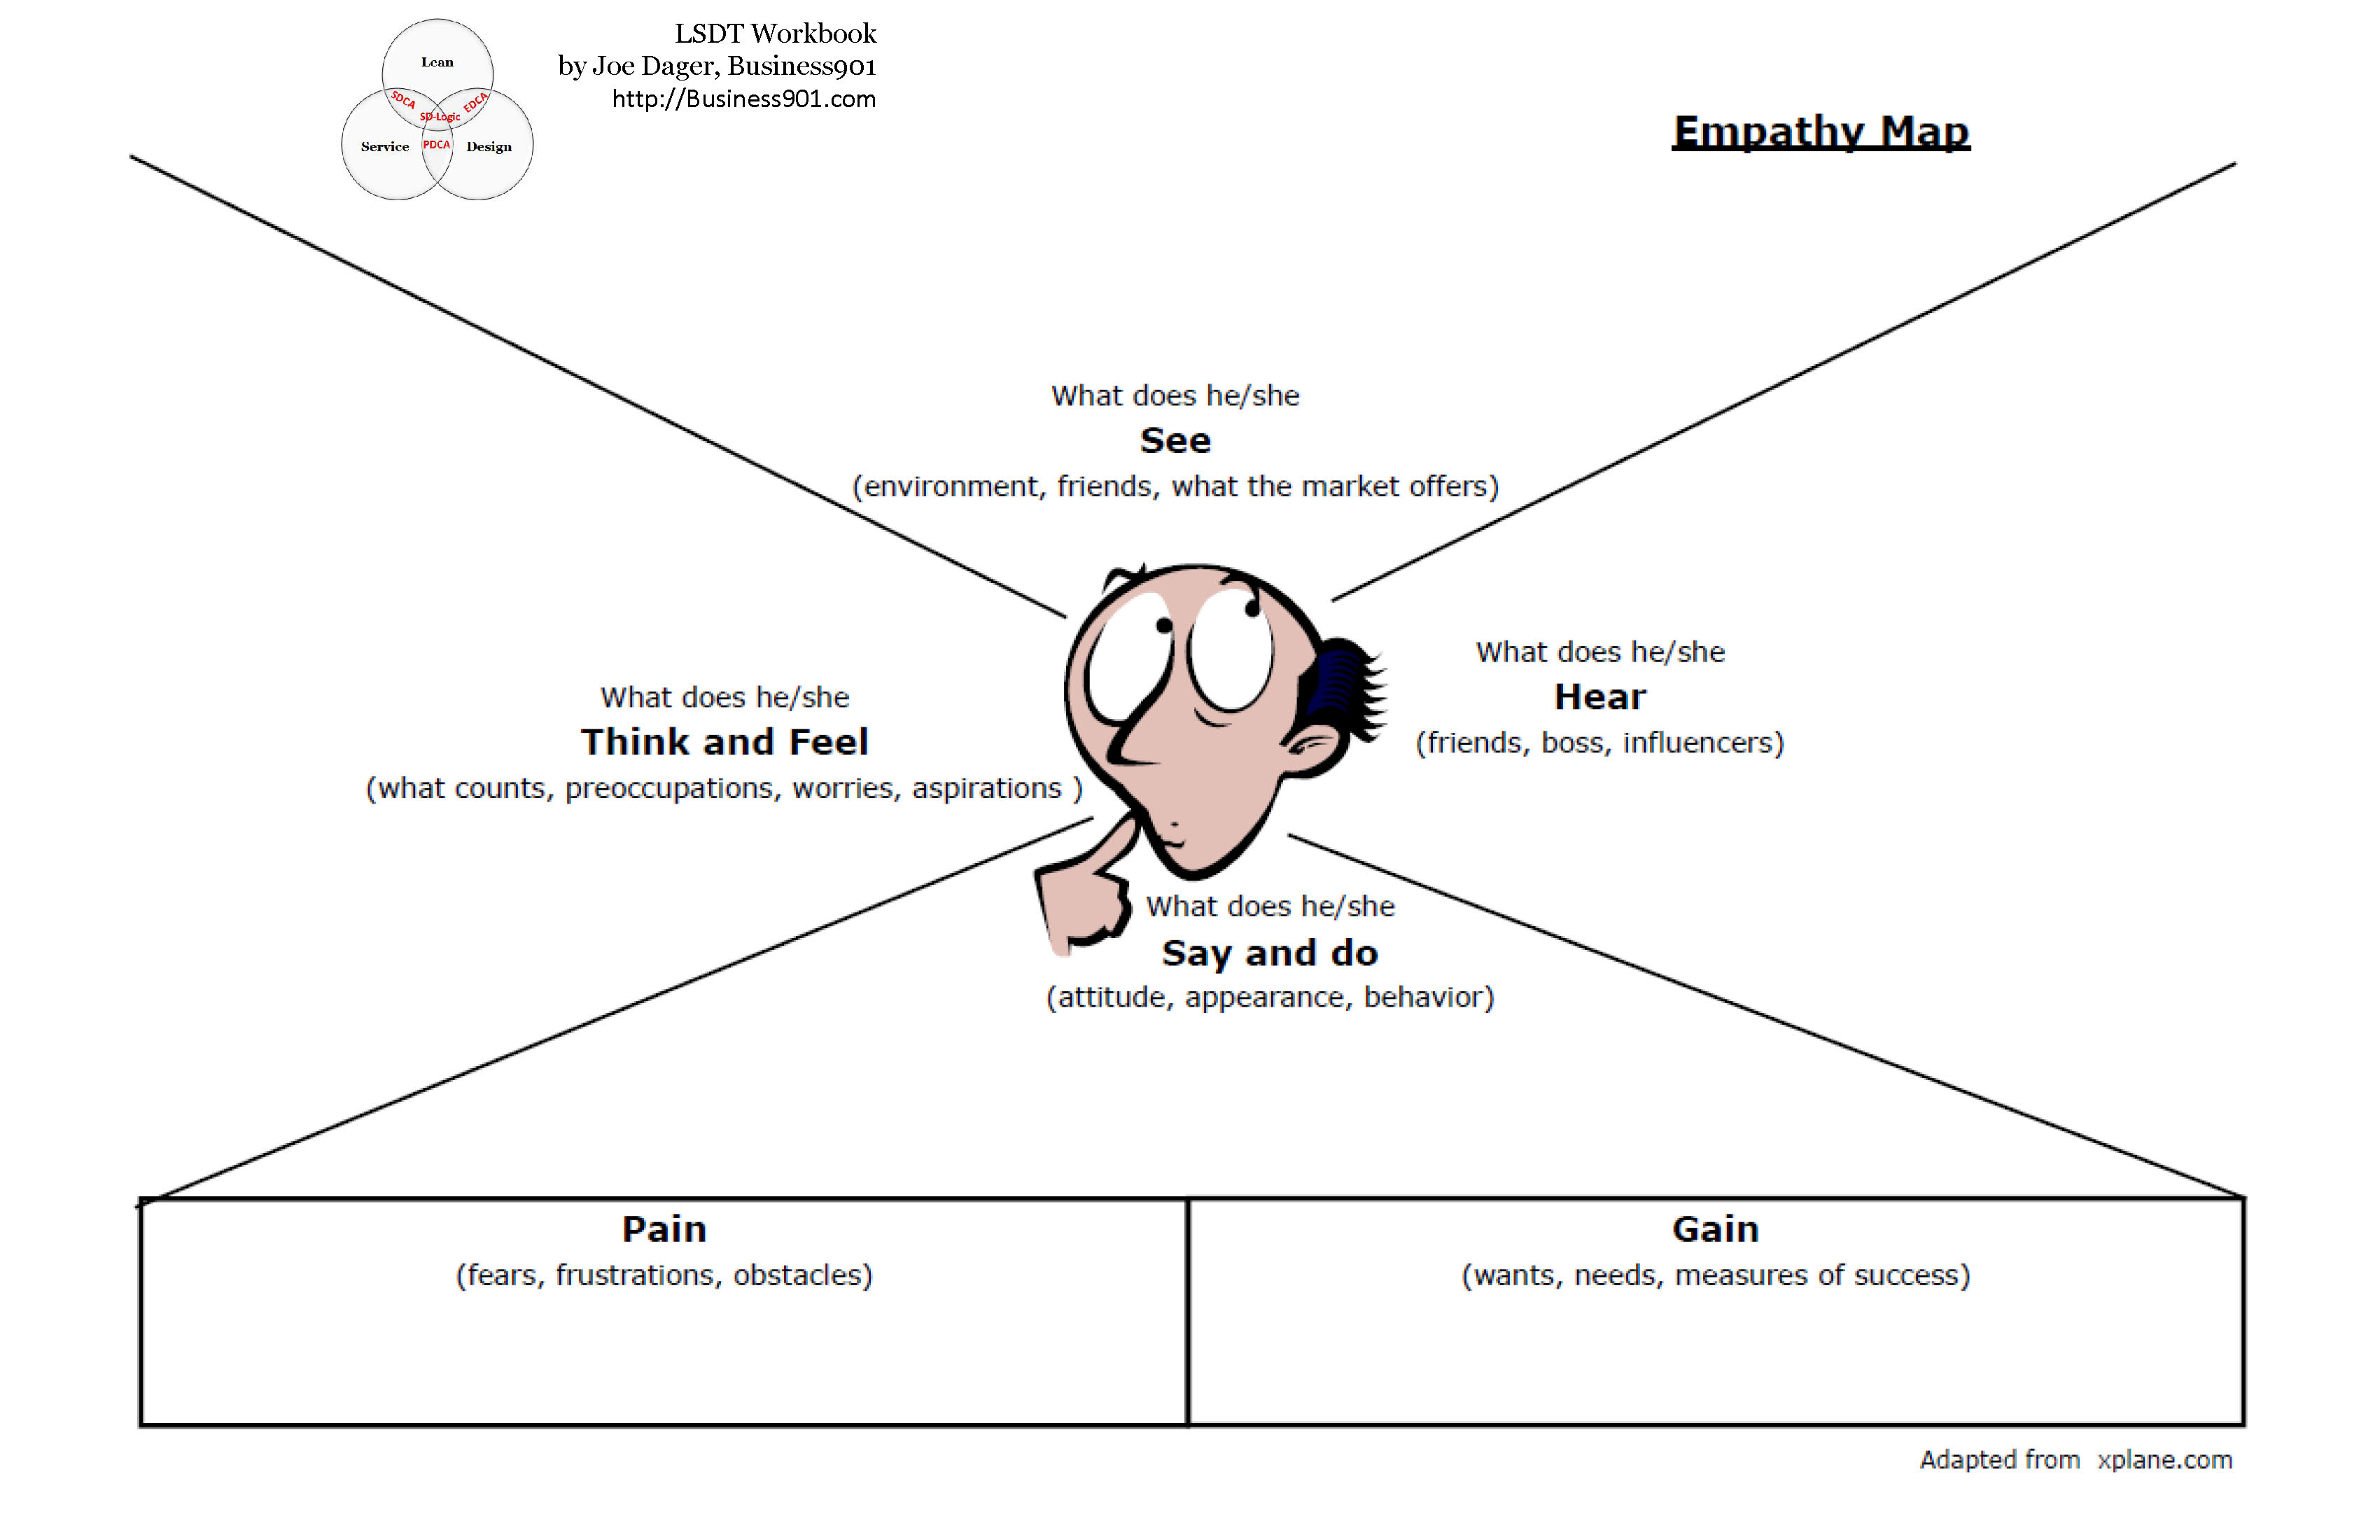 Empathy map template eliolera adding context to the buyer persona customerthink pronofoot35fo Choice Image